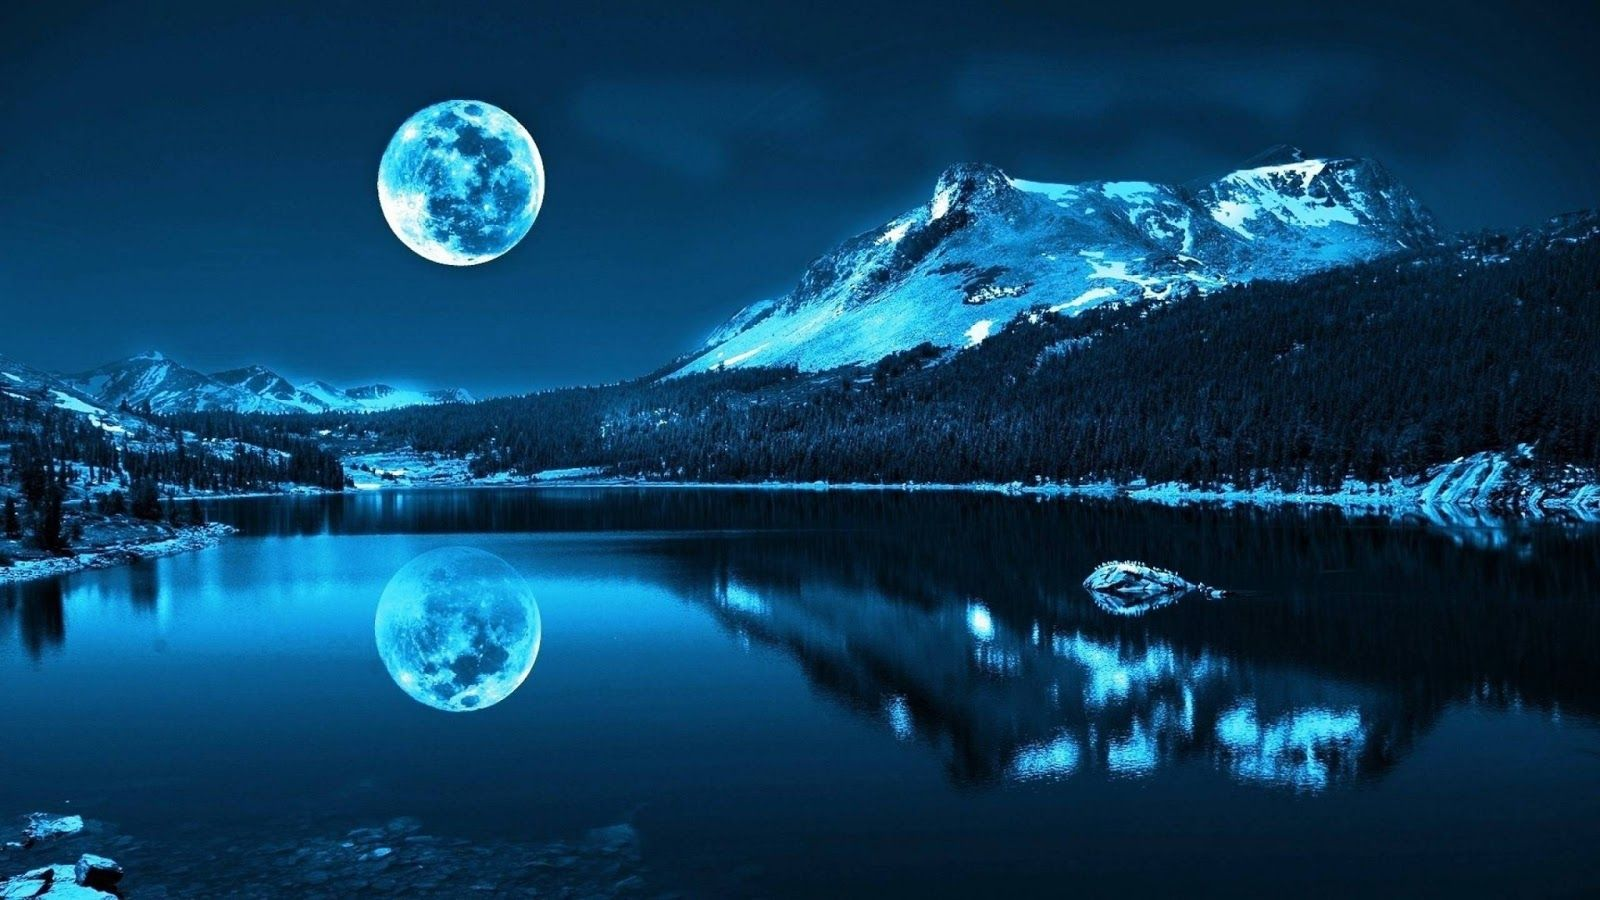 Descargar Wallpaper Para Computadoras Gratis Night Scenery Nature Wallpaper Mountain Wallpaper